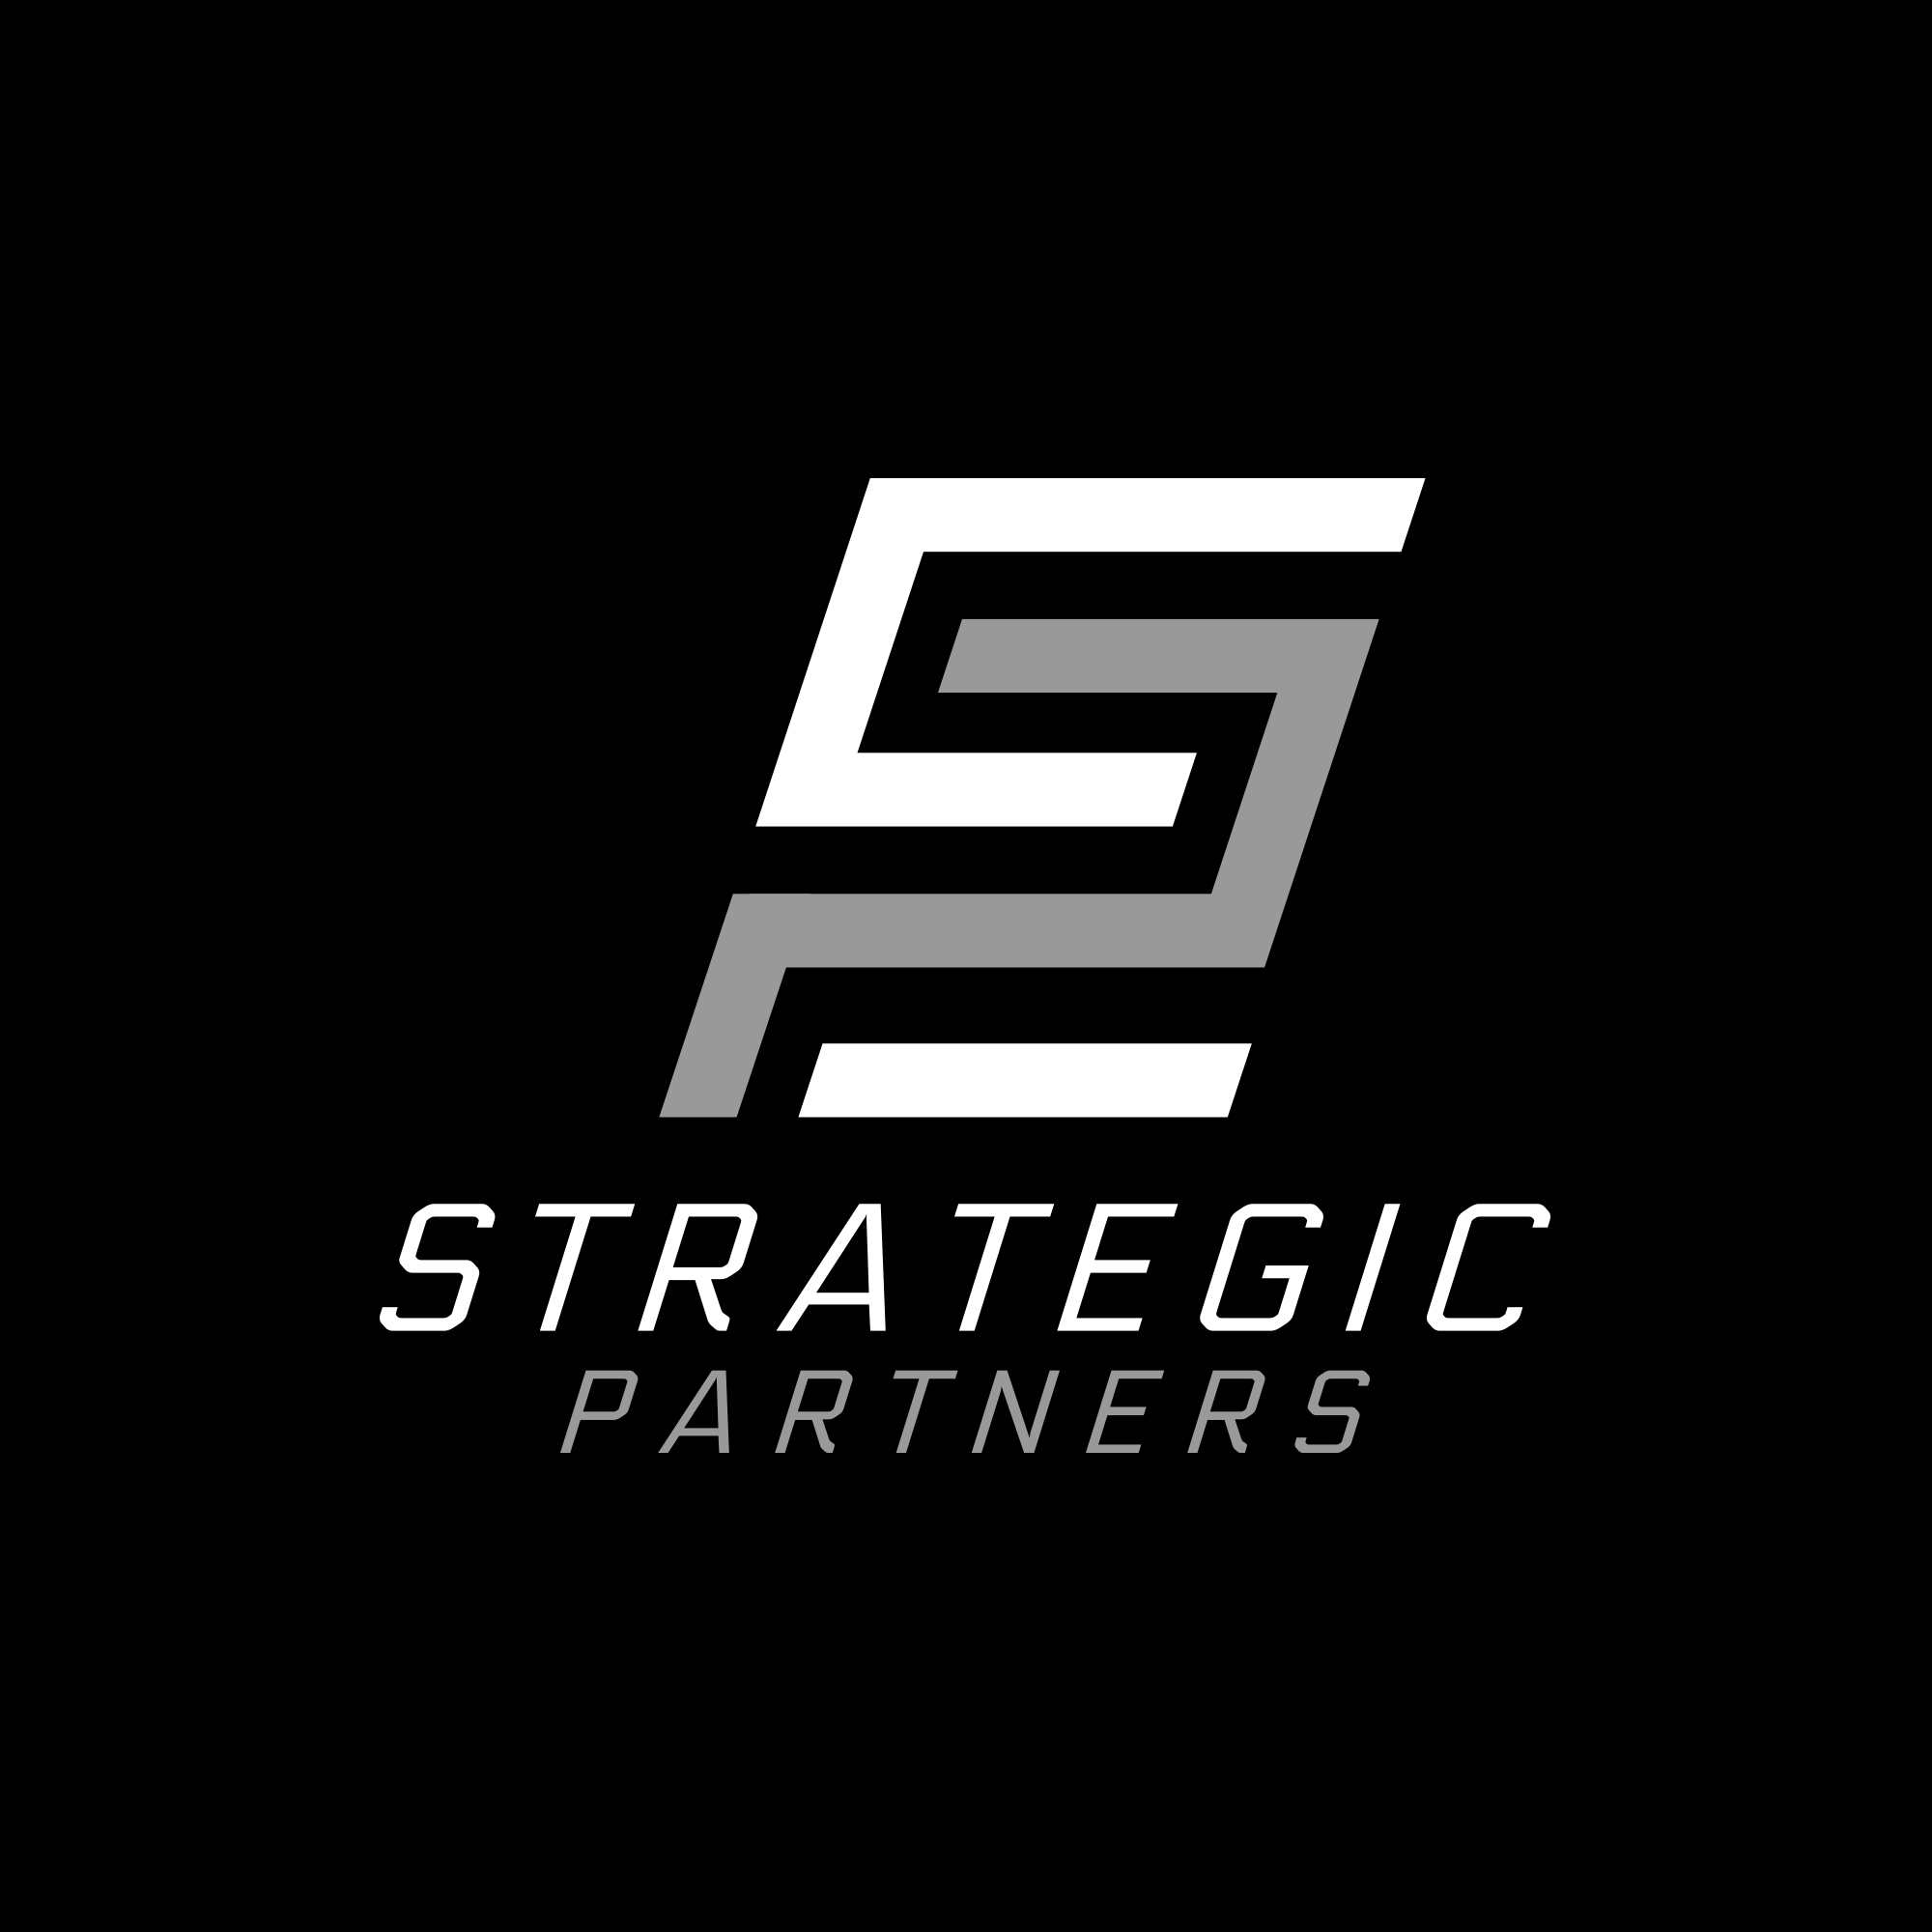 strategic_partners_logo_(9).jpg